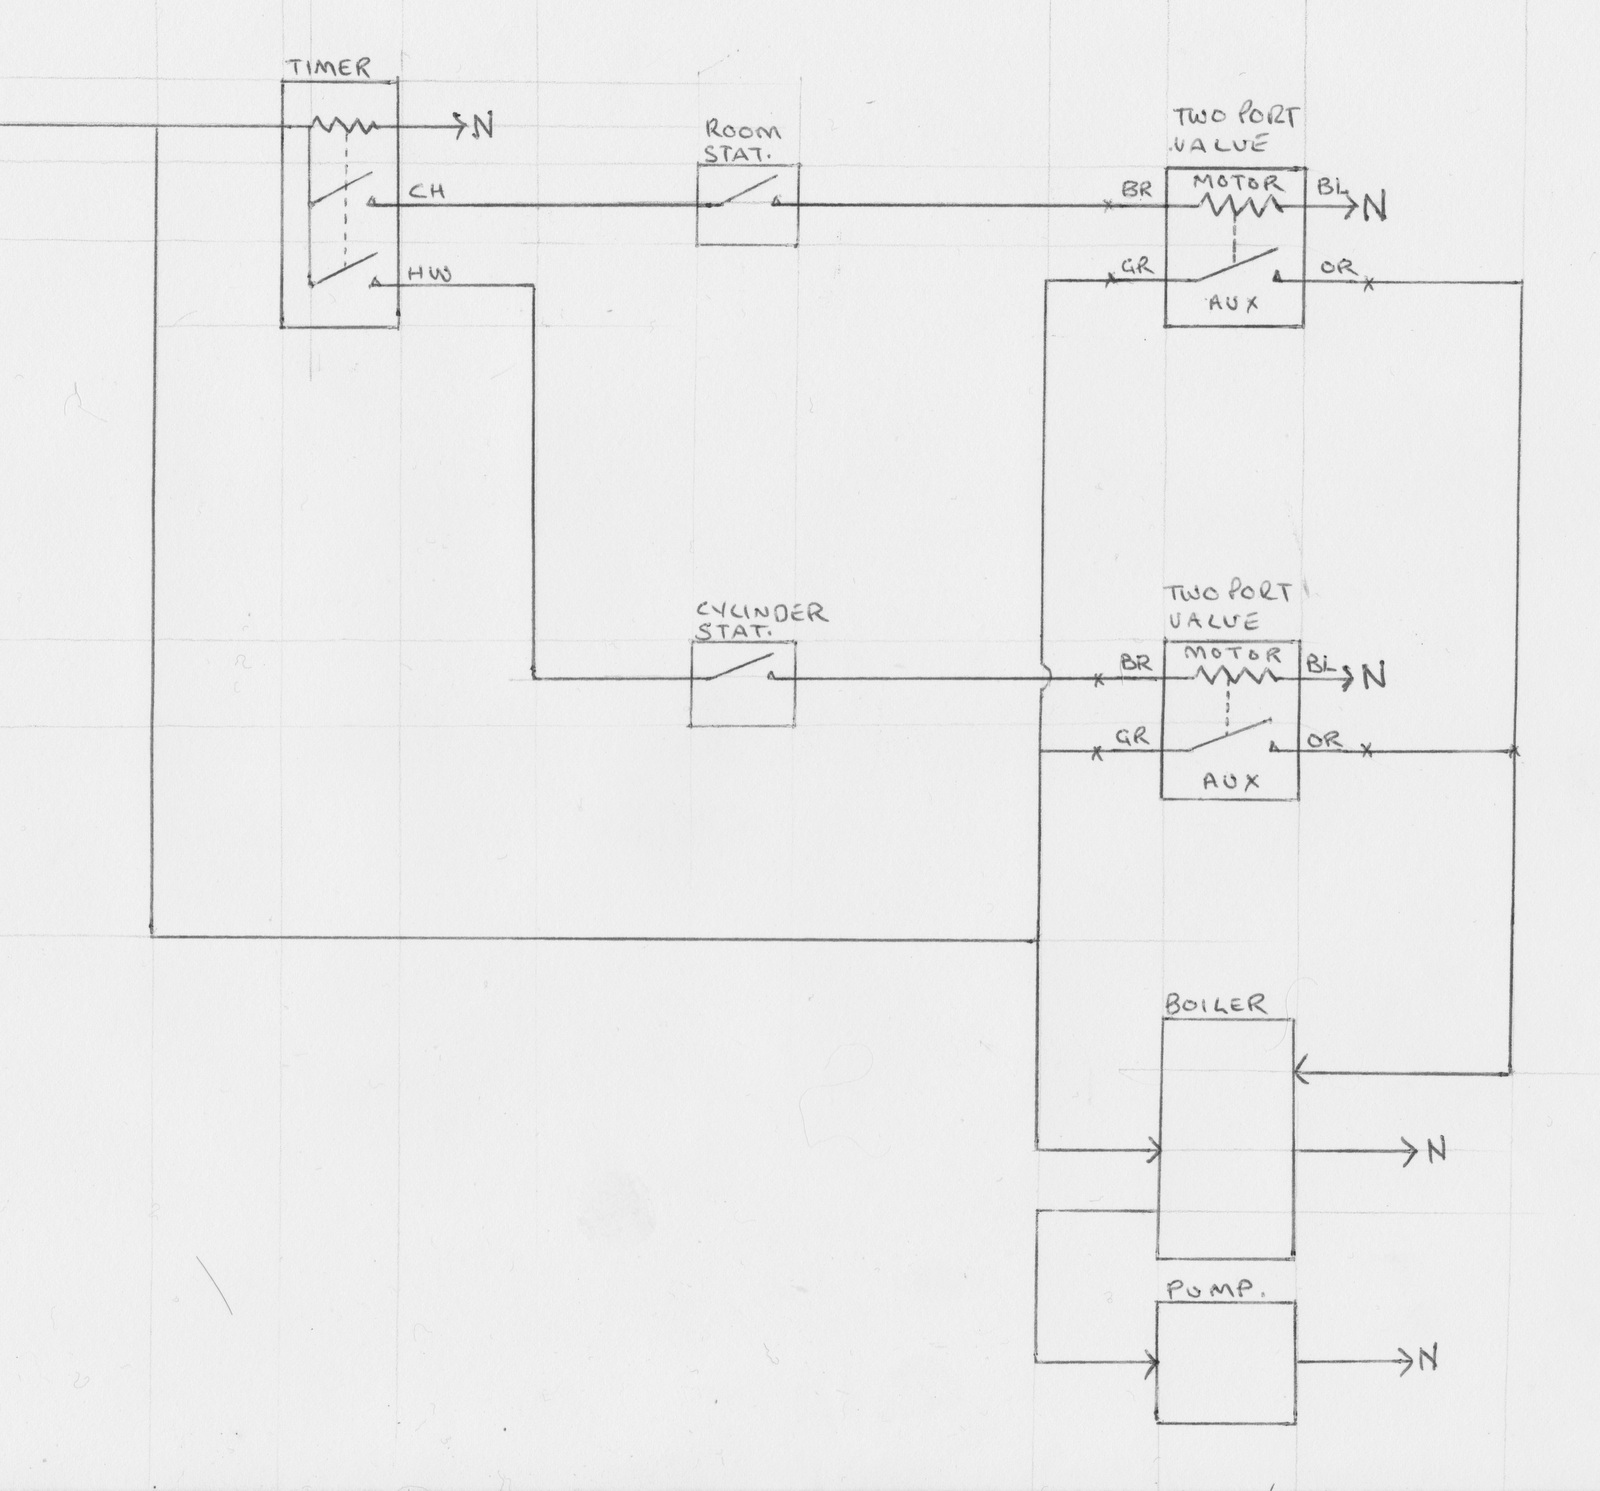 honeywell s plan wiring system the technicians handbookthe diagram shows an s plan wiring system where [ 1600 x 1491 Pixel ]